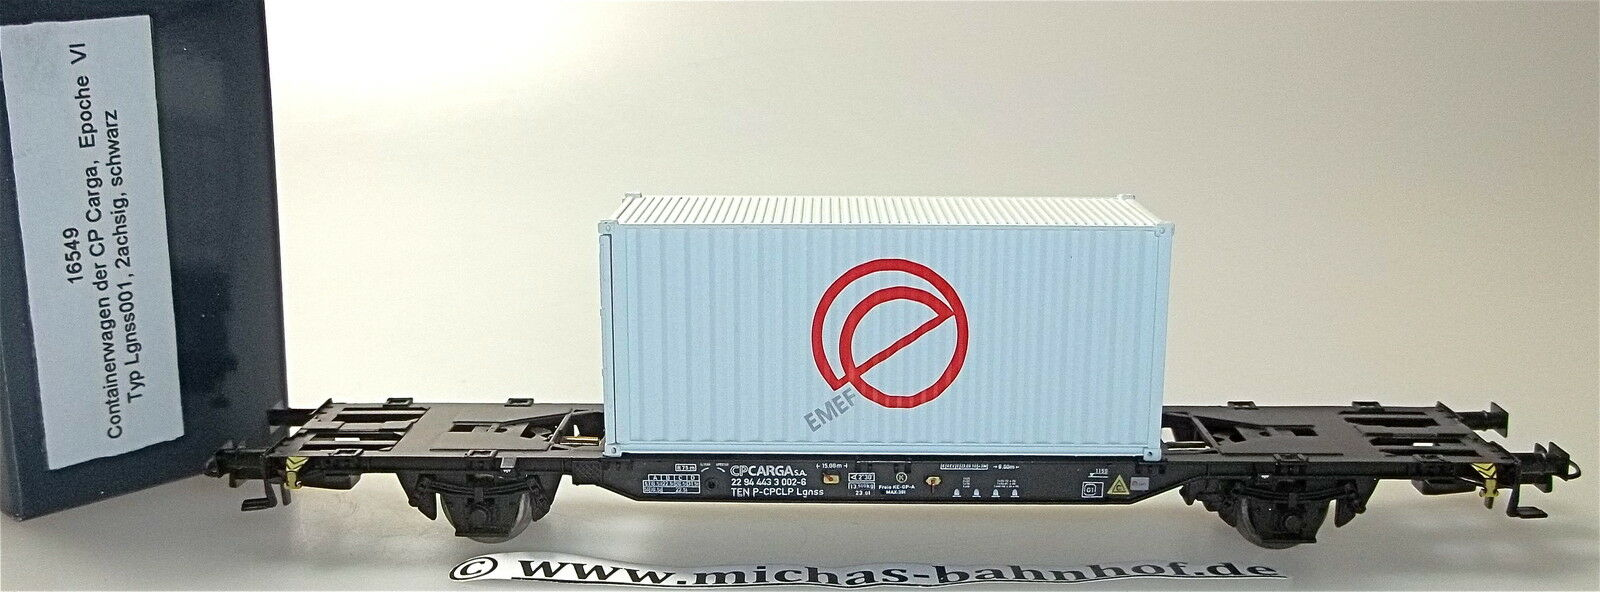 Wagon 2 axle lgnss container traffic 001 cp cargo emef container ep4